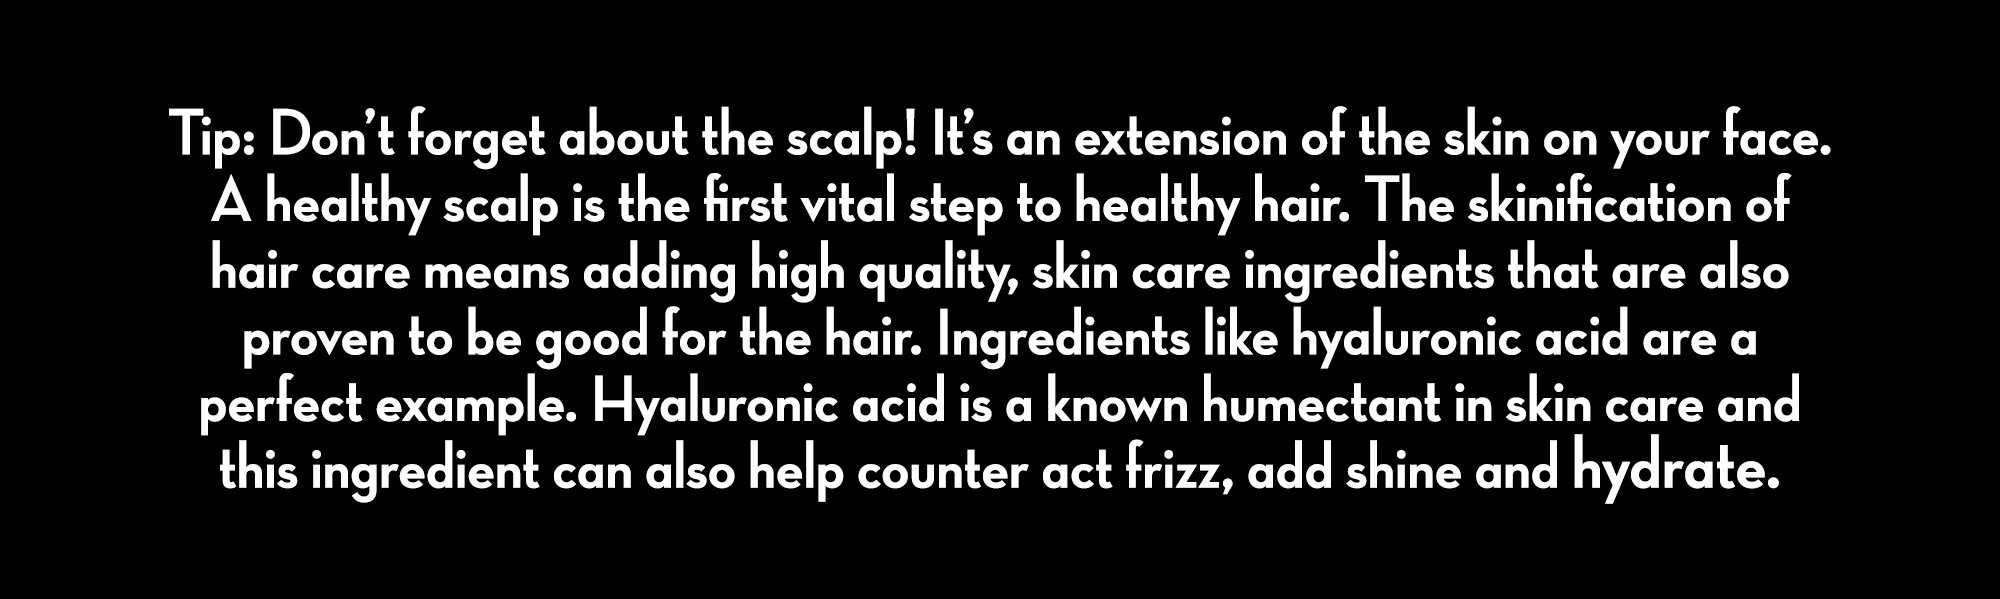 Tip: Don't forget about the scalp! It's an extension of the skin on your face. A healthy scalp is the first vital step to healthy hair. The skinification of hair care means adding high quality, skin care ingredients that are also proven to be good for the hair. Ingredients like hyaluronic acid are a perfect example. Hyaluronic acid is a known humectant in skin care and this ingredient can also help counter act frizz, add shine and hydrate. Caffeine helps to energize the skin all over, including the scalp. Magnesium Ascorbyl Phosphate, a stable form of Vitamin C helps brighten and keep skin youthful and also works to help tighten the cuticles for enhanced shine. Certain skin care ingredients will treat the hair while they treat the scalp.